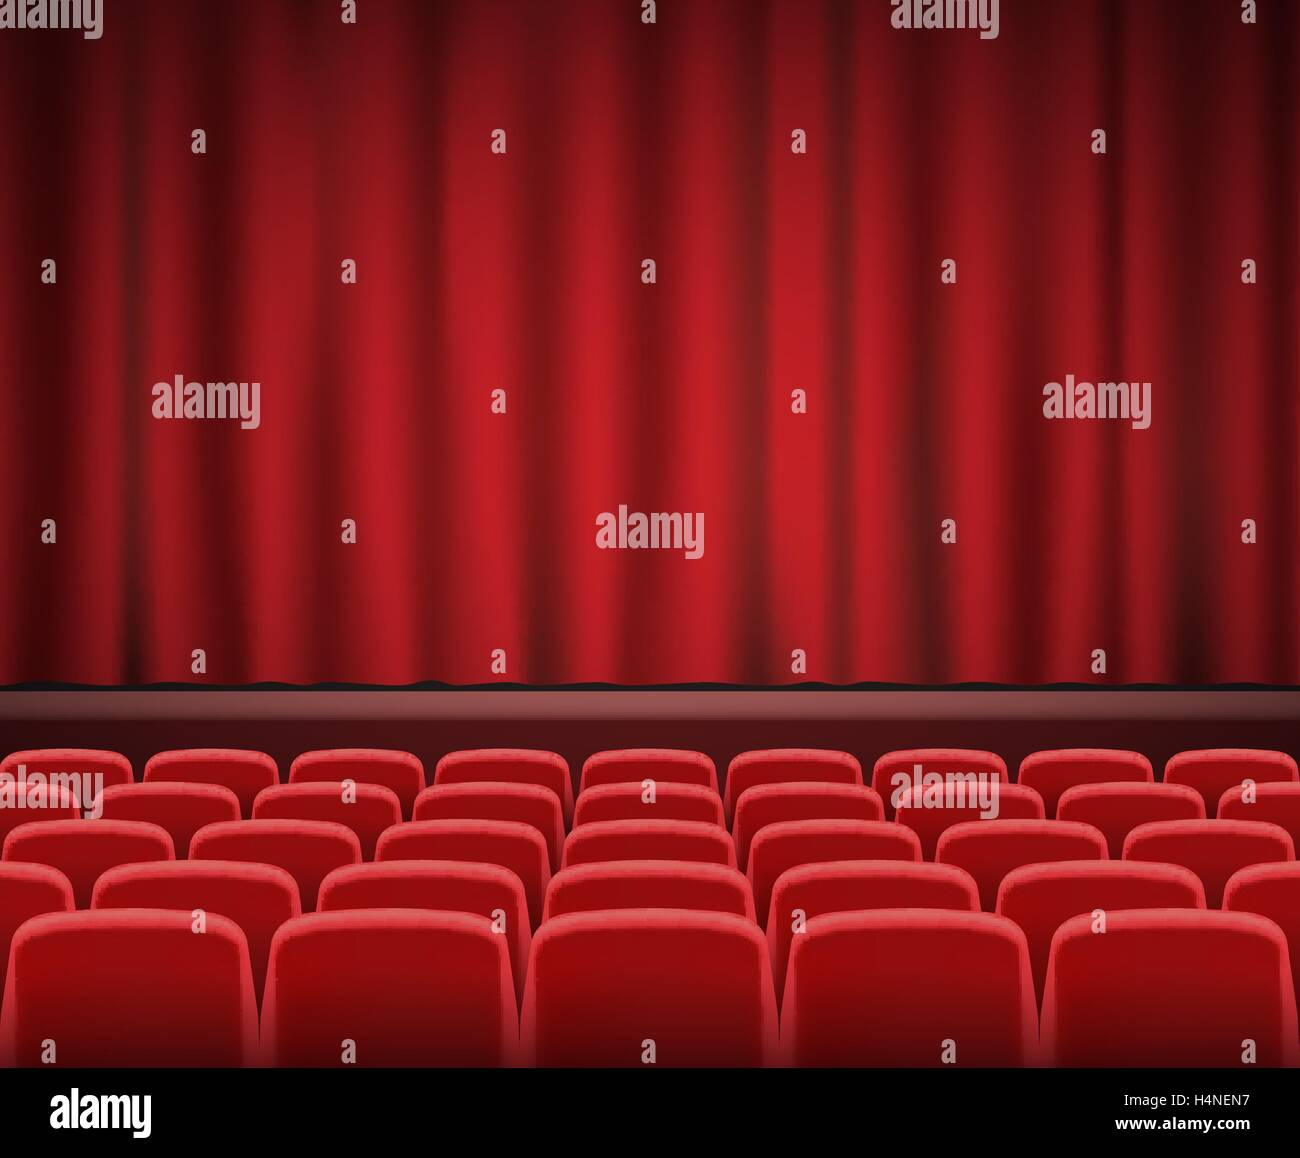 Rows Of Red Cinema Or Theater Seats In Front Of Show Stage Stock Vector Image Art Alamy